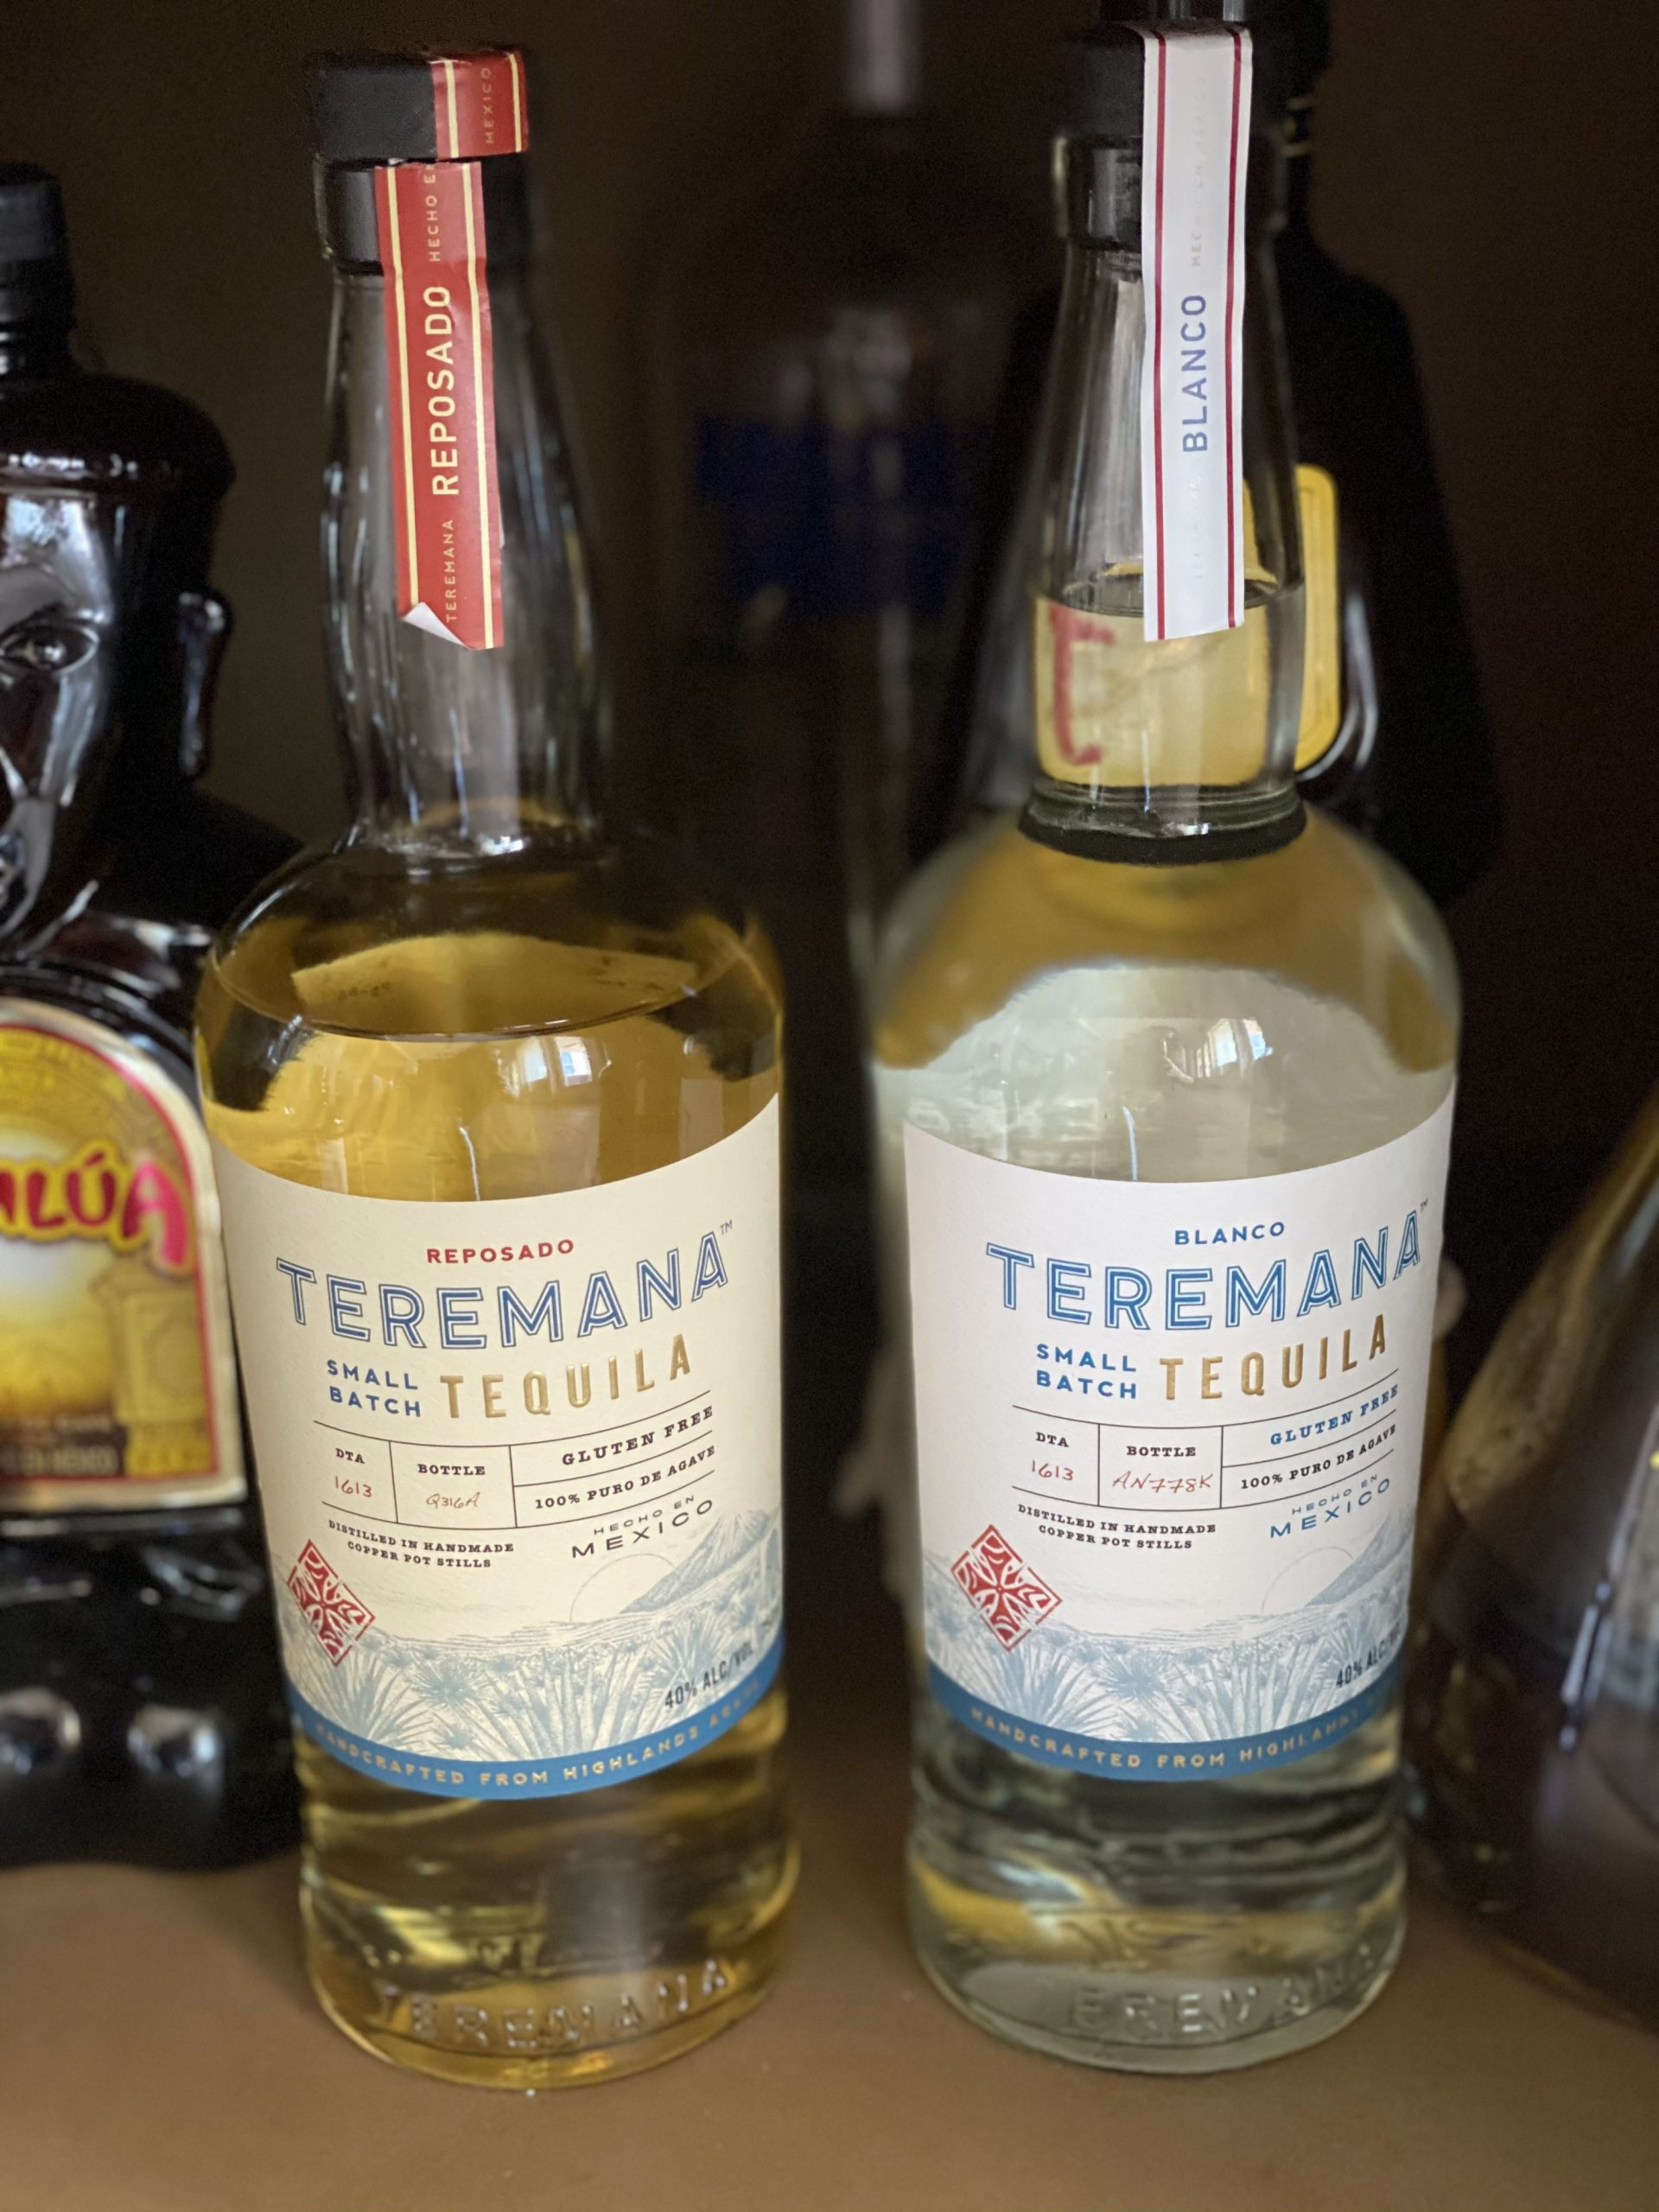 Bottles of Teremana Tequila